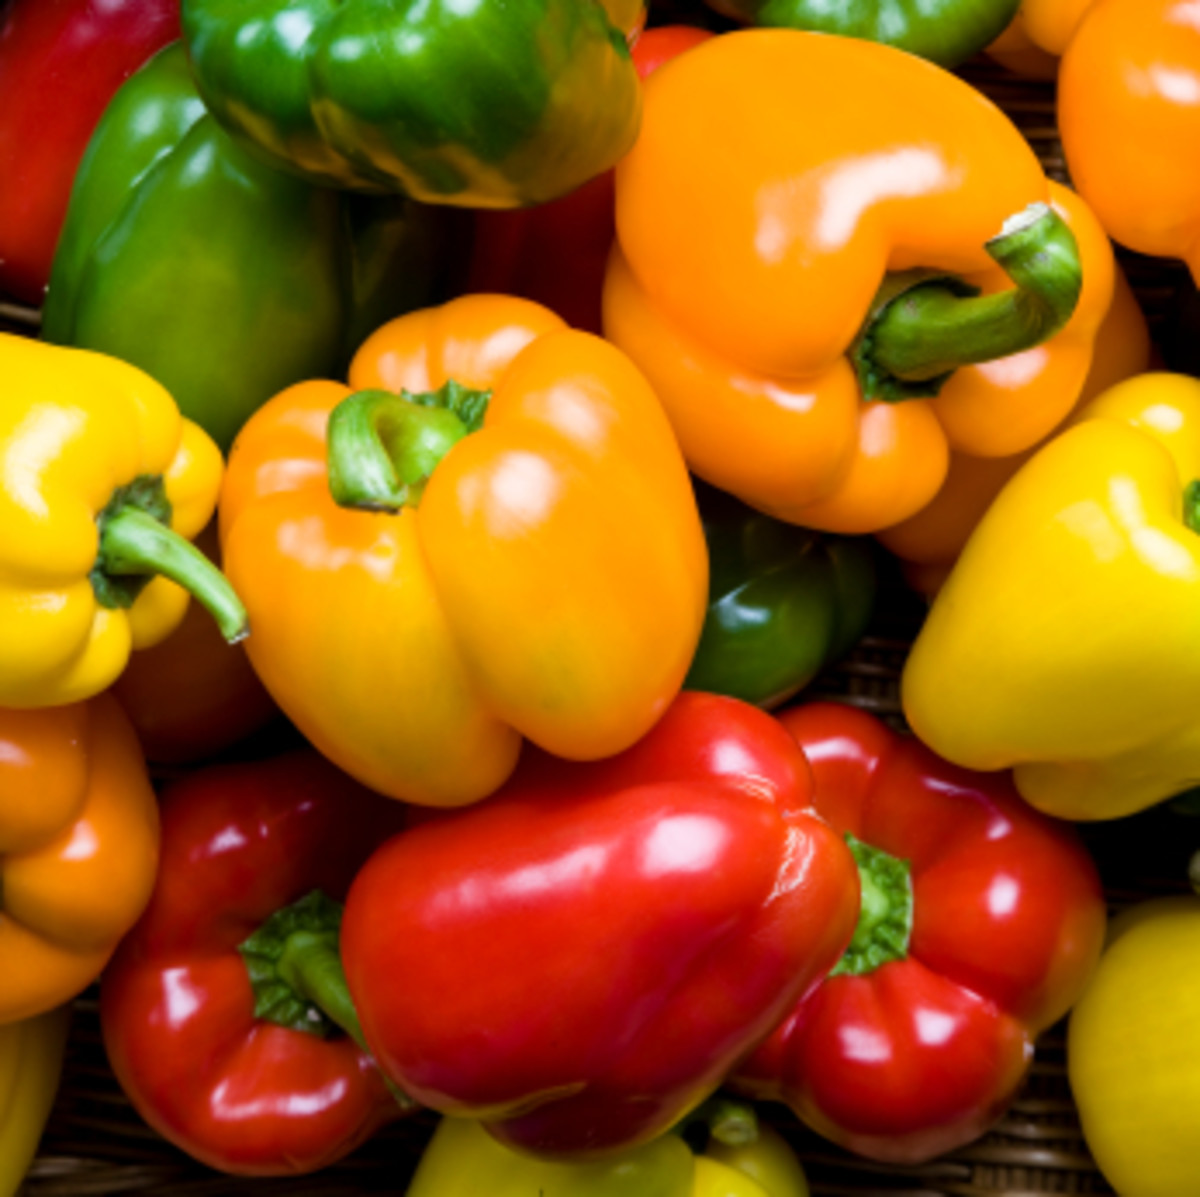 Bell peppers come in many colors!